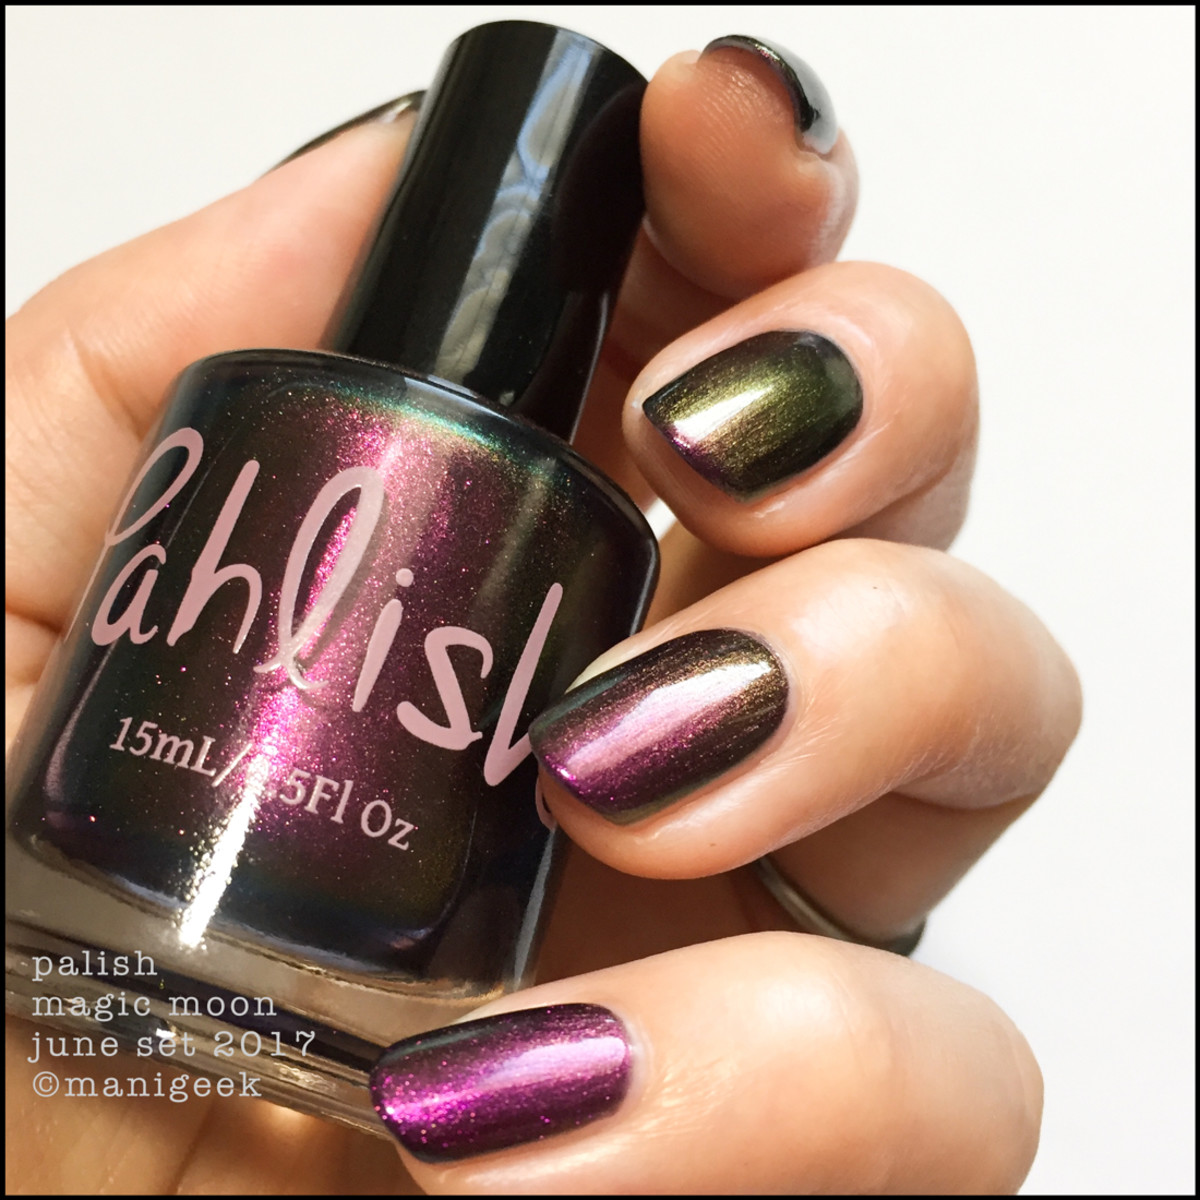 Pahlish Magic Moon Multichrome - Pahlish June 2017 Collection Swatches